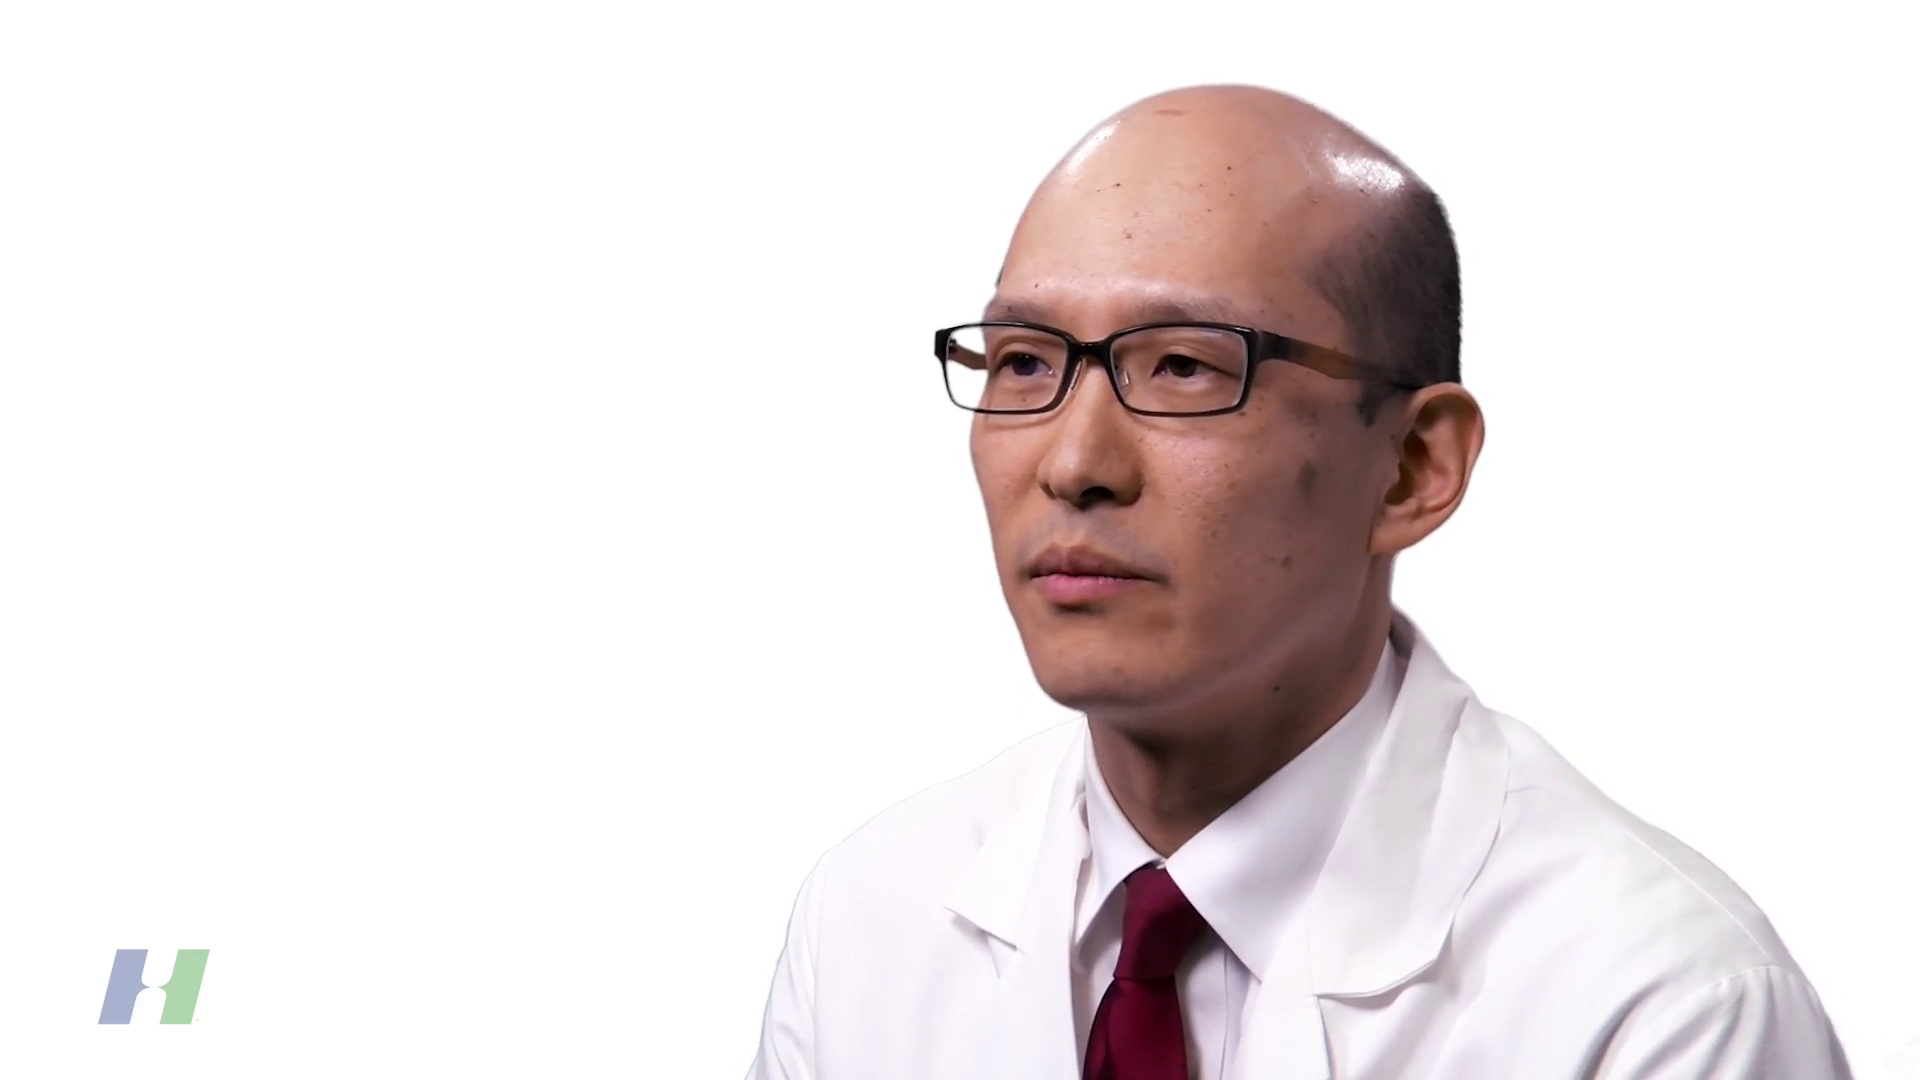 Dr. Shin talks about his practice